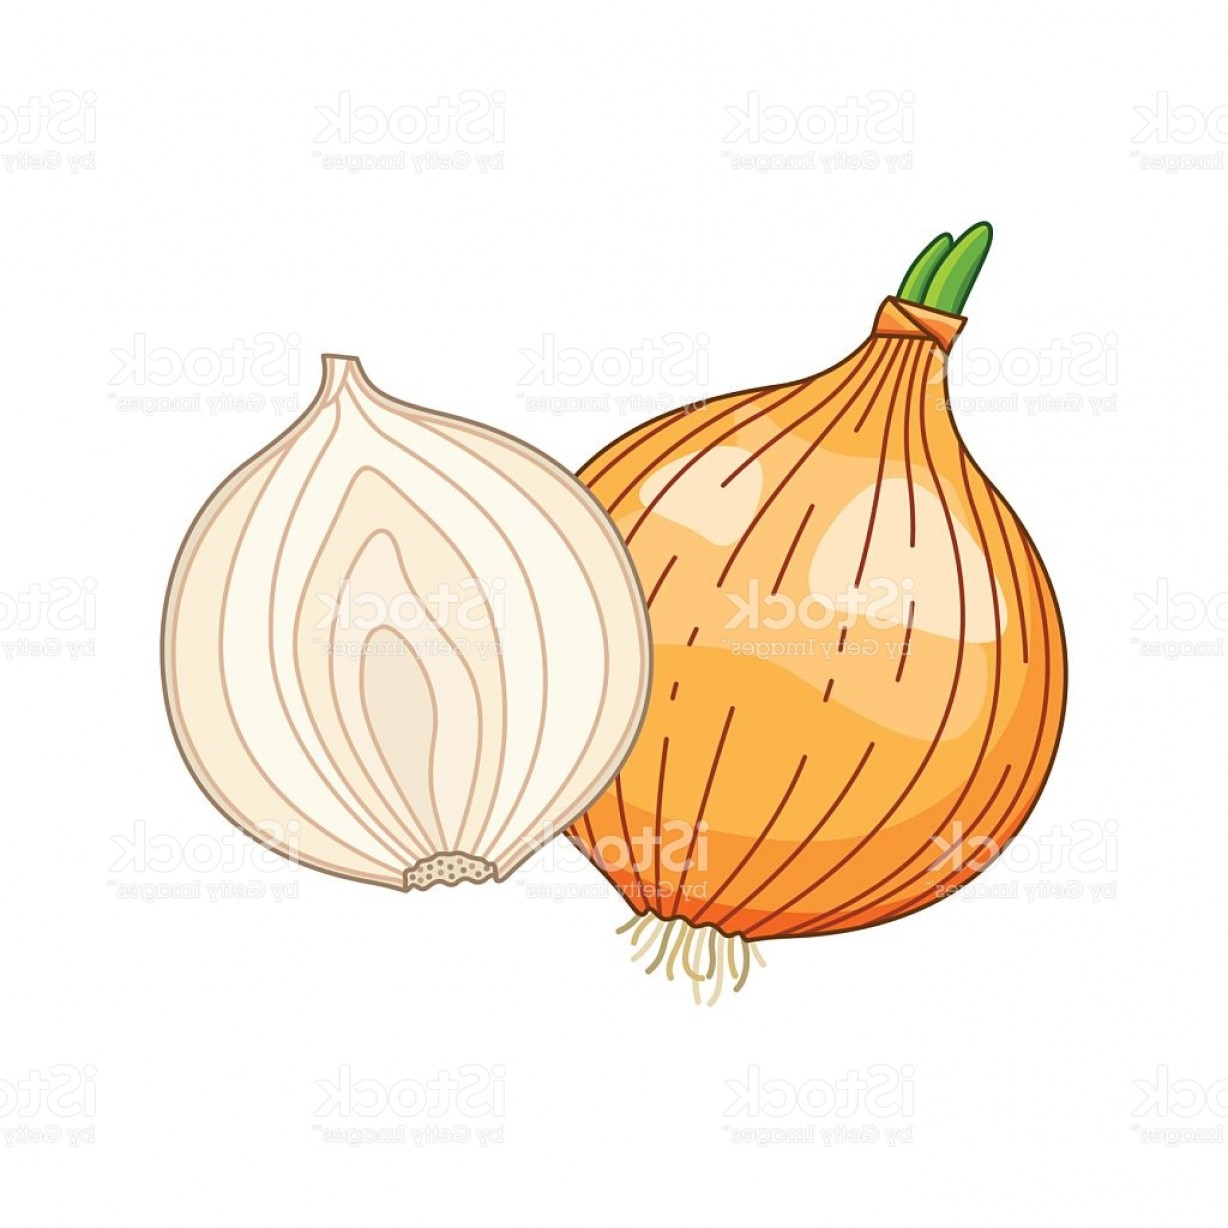 Onion Vector: Onion Vector Colored Botanical Illustration Gm